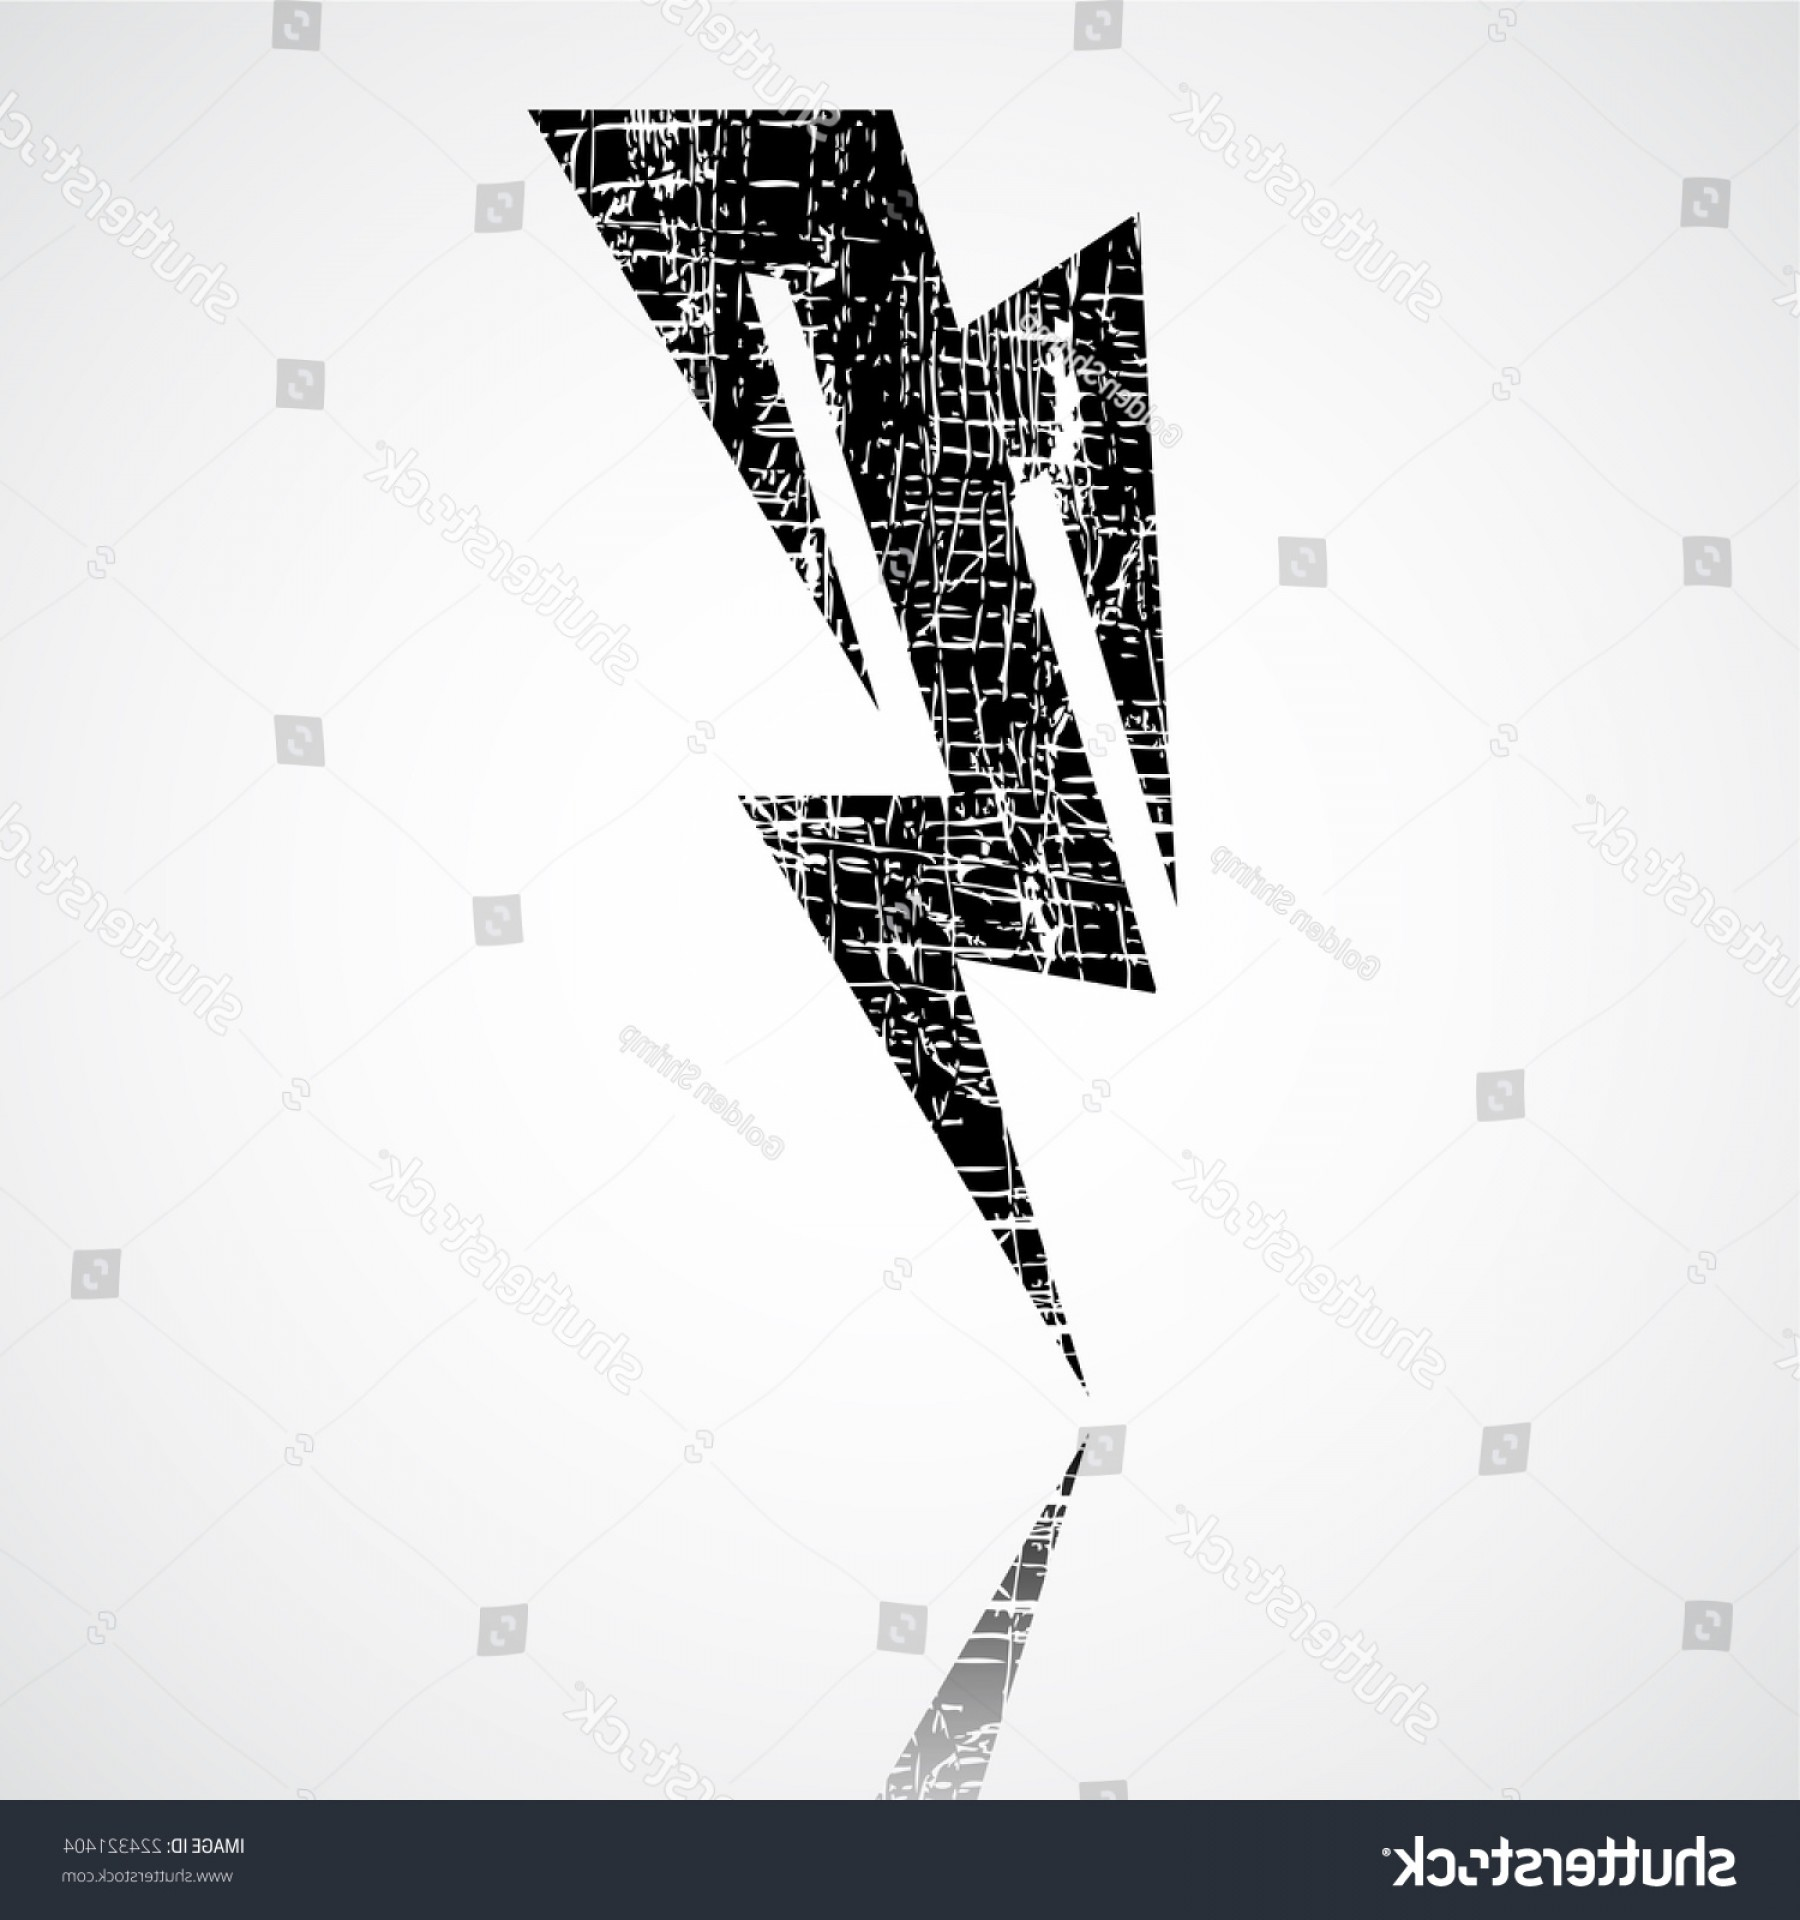 Vector Lightning Bolt Tribe: Thunderstorm Lightning Bolt Thunder Grunge Vector